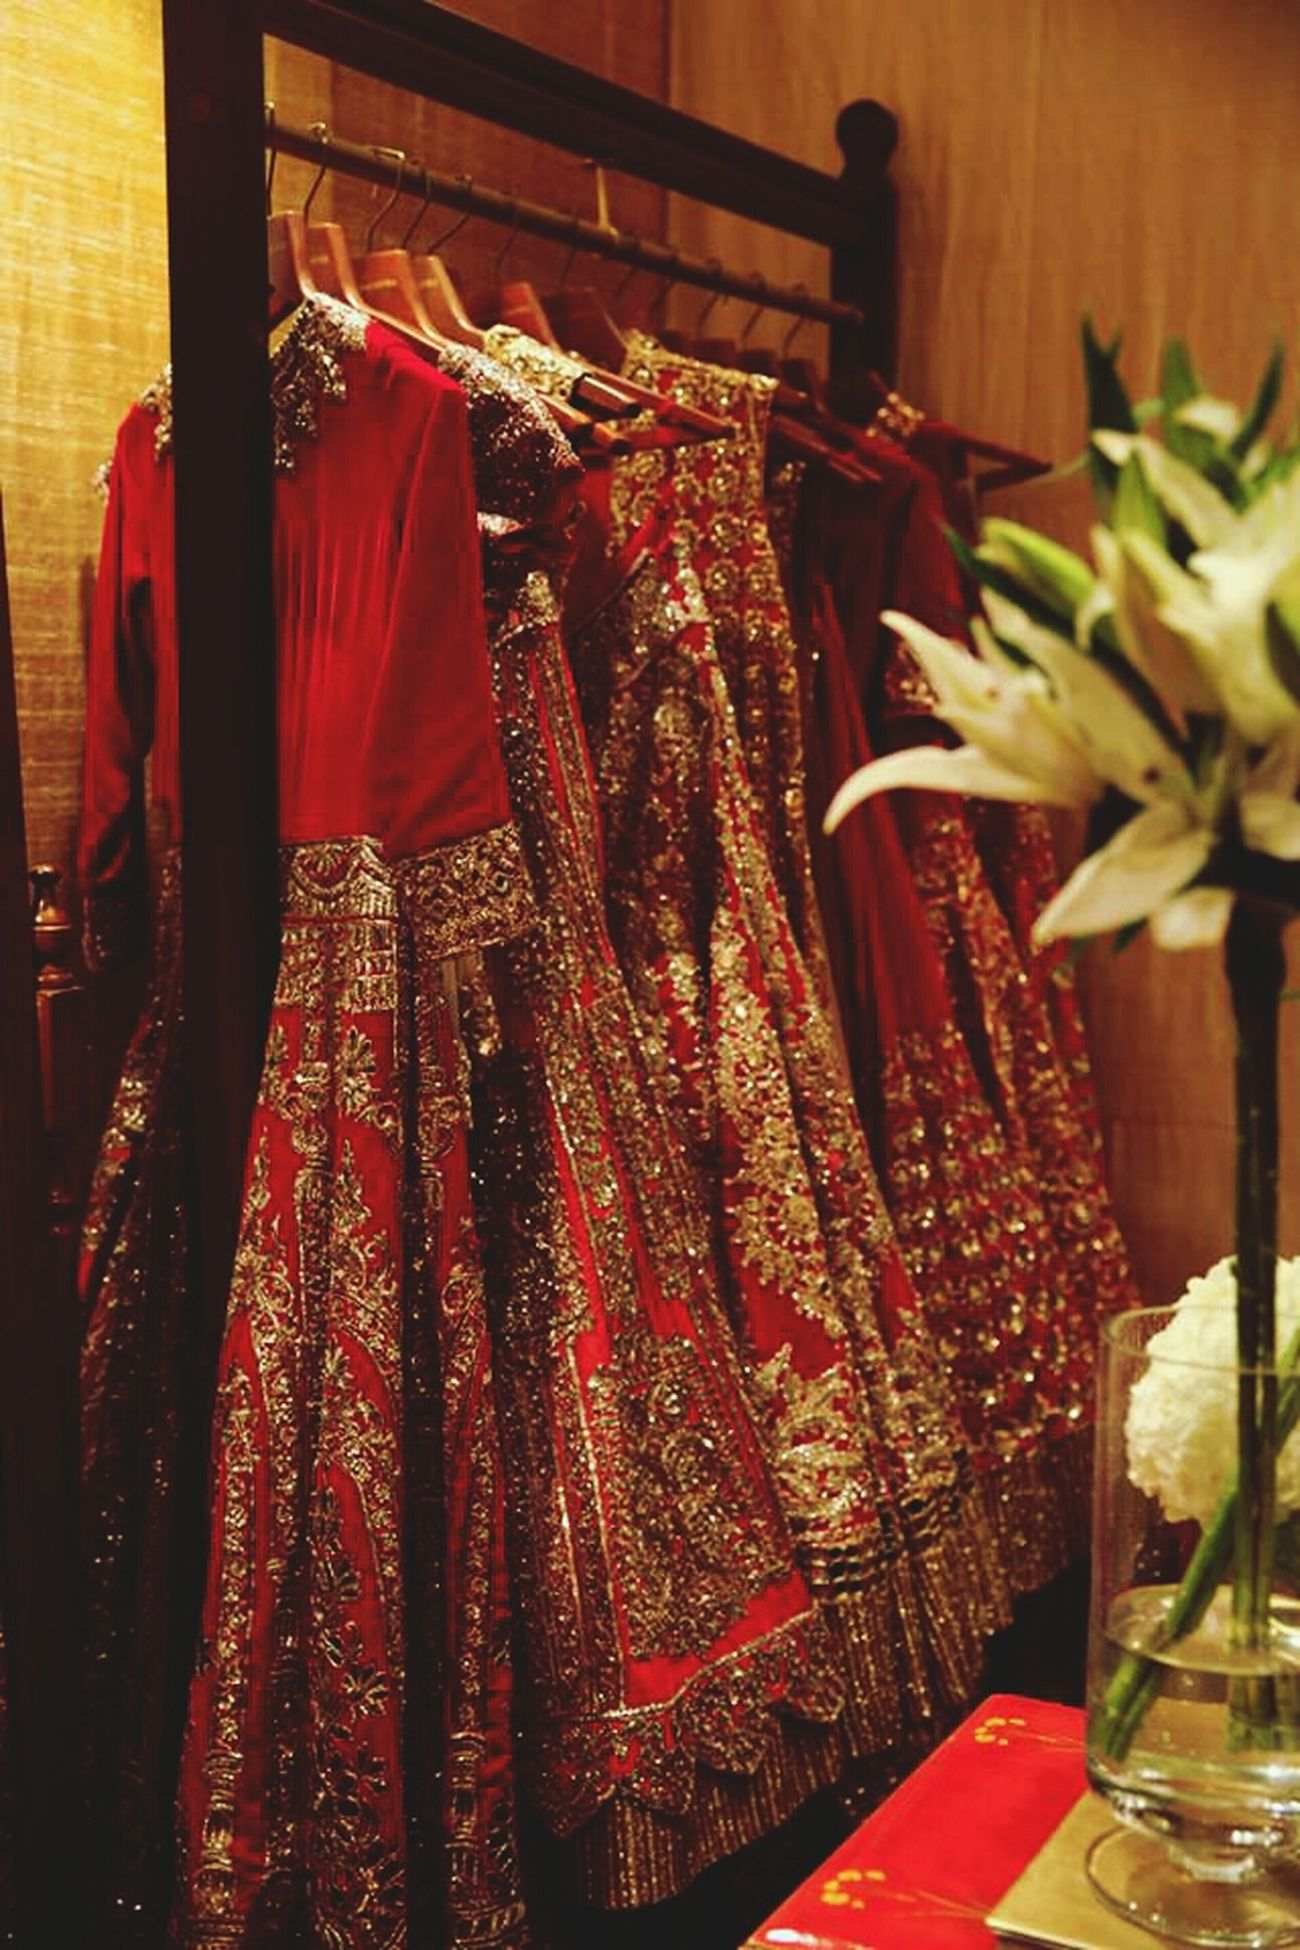 SisterLovee ♥ Manish Malhotra Wedding Dress Fashion&love&beauty thank u manish malhotra!